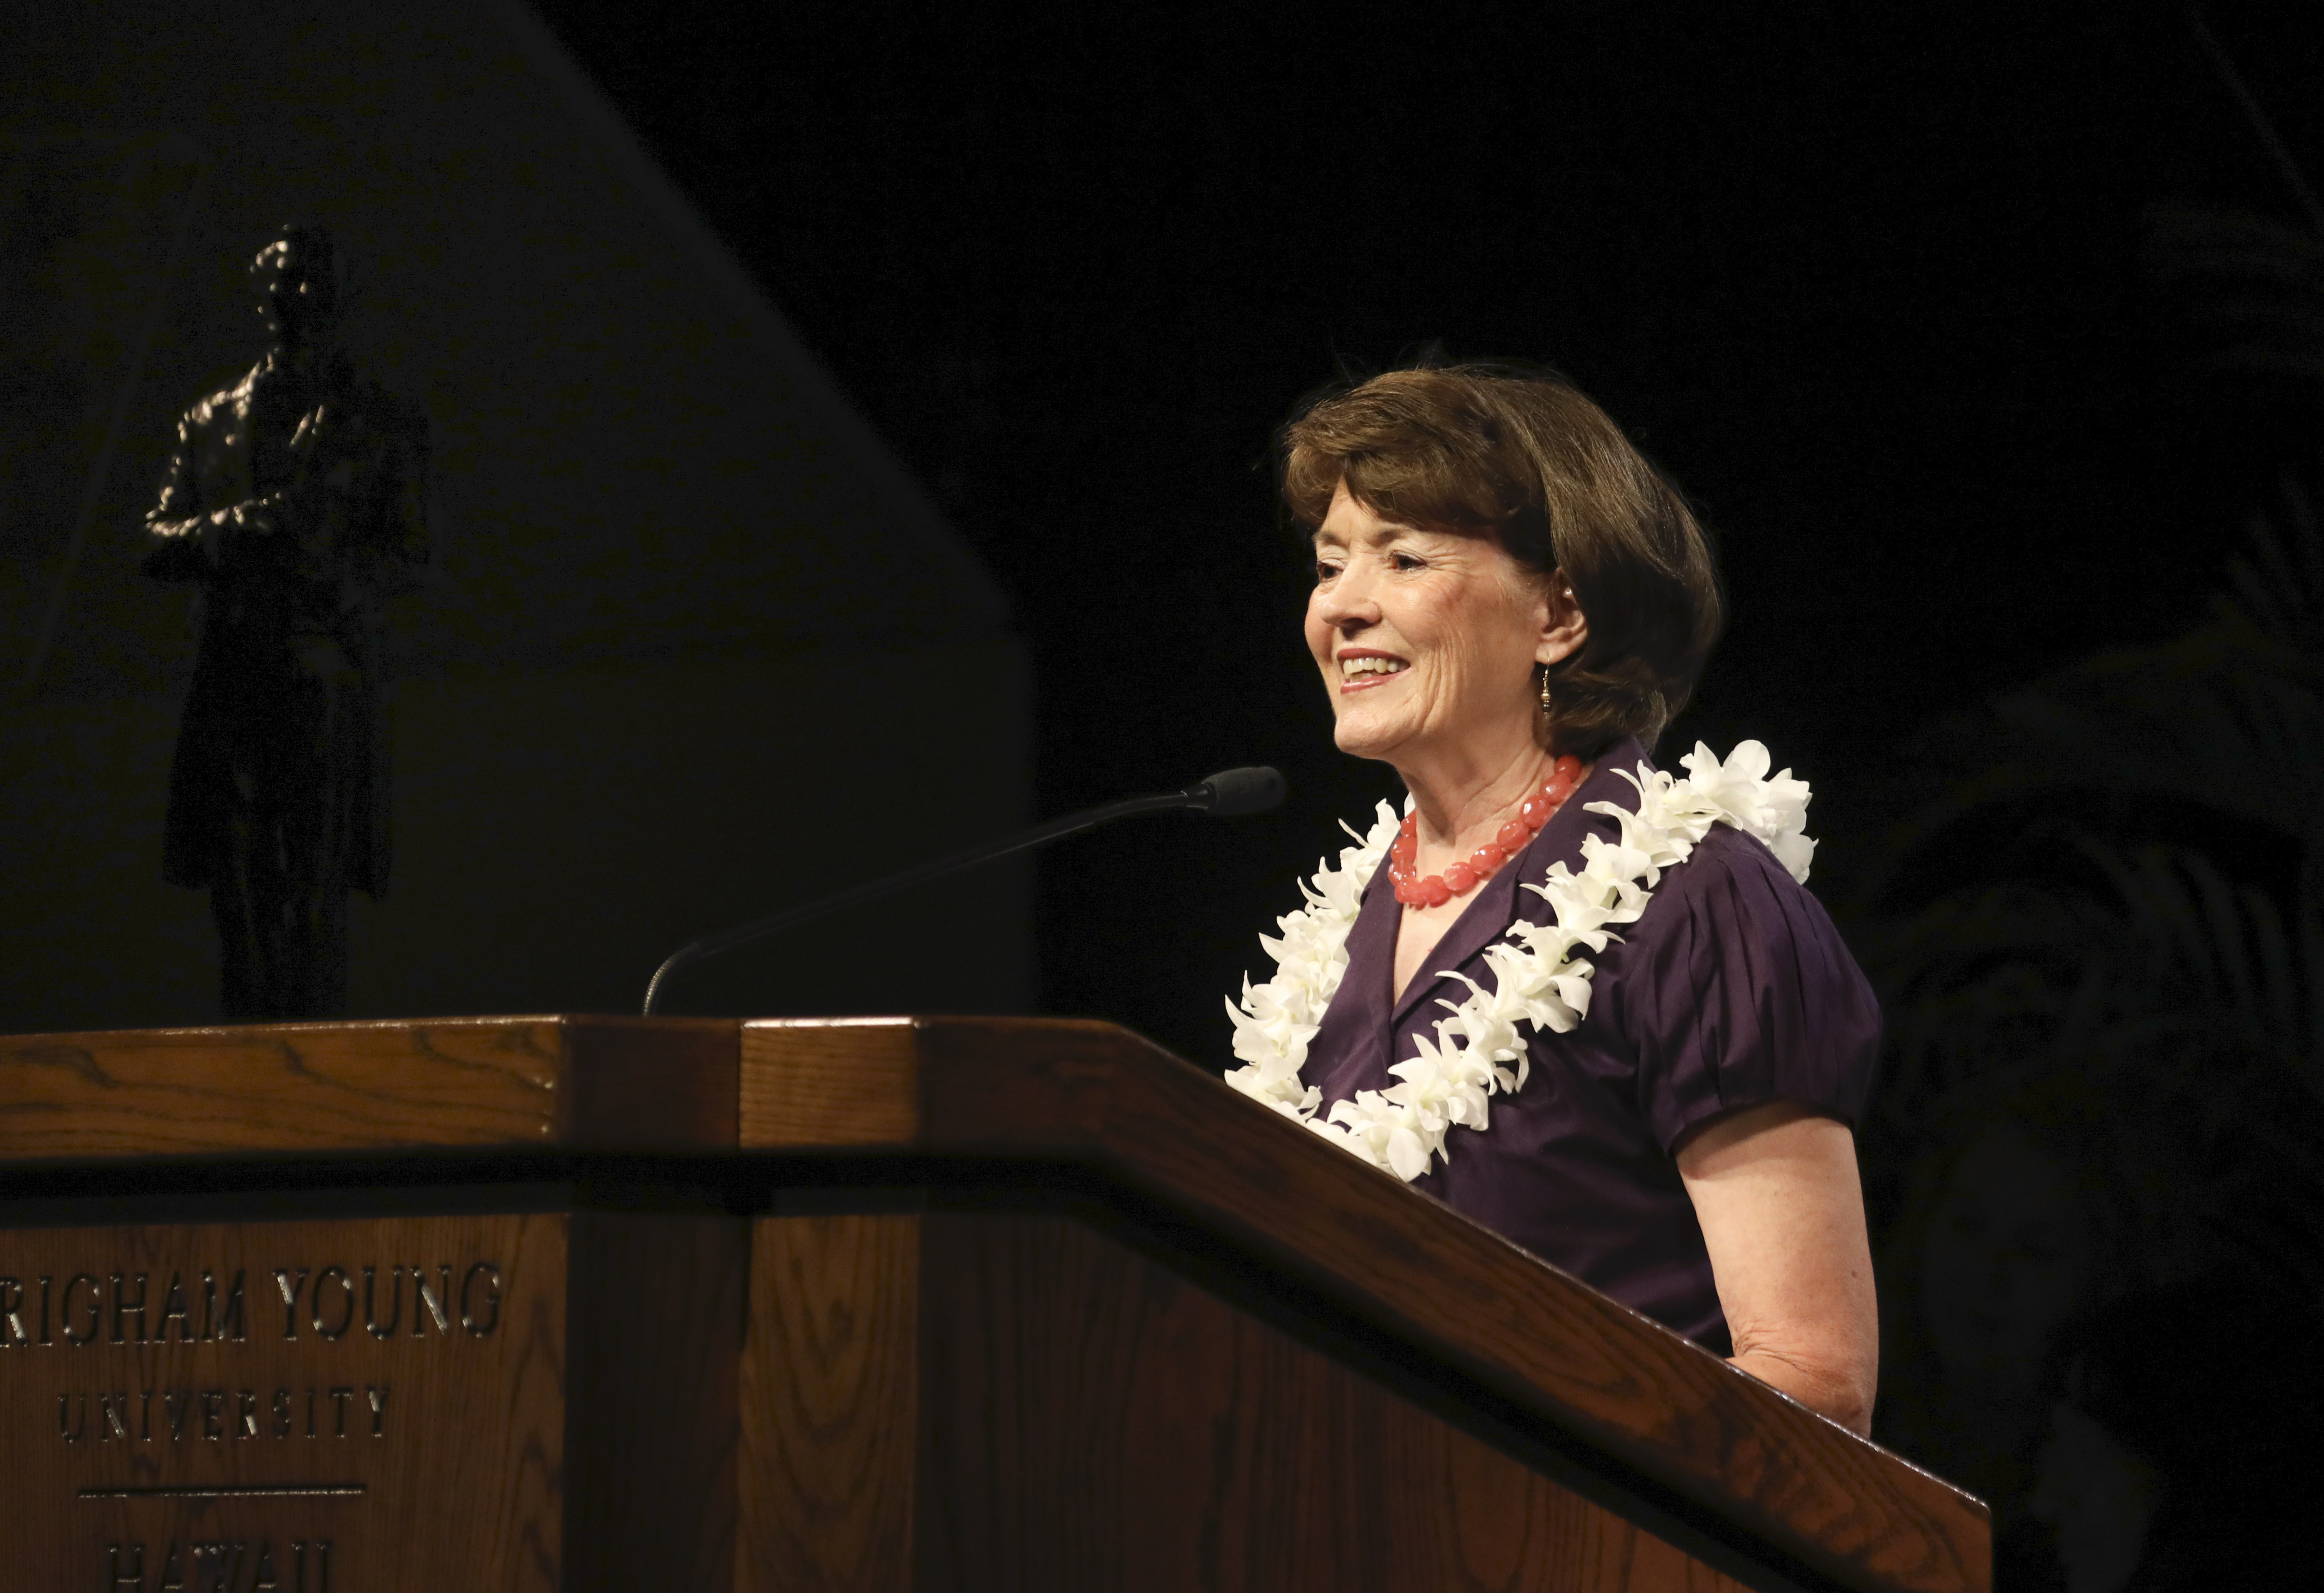 Sister Susan W. Tanner speaks to students at the BYU - Hawaii Devotional on September 10, 2019.